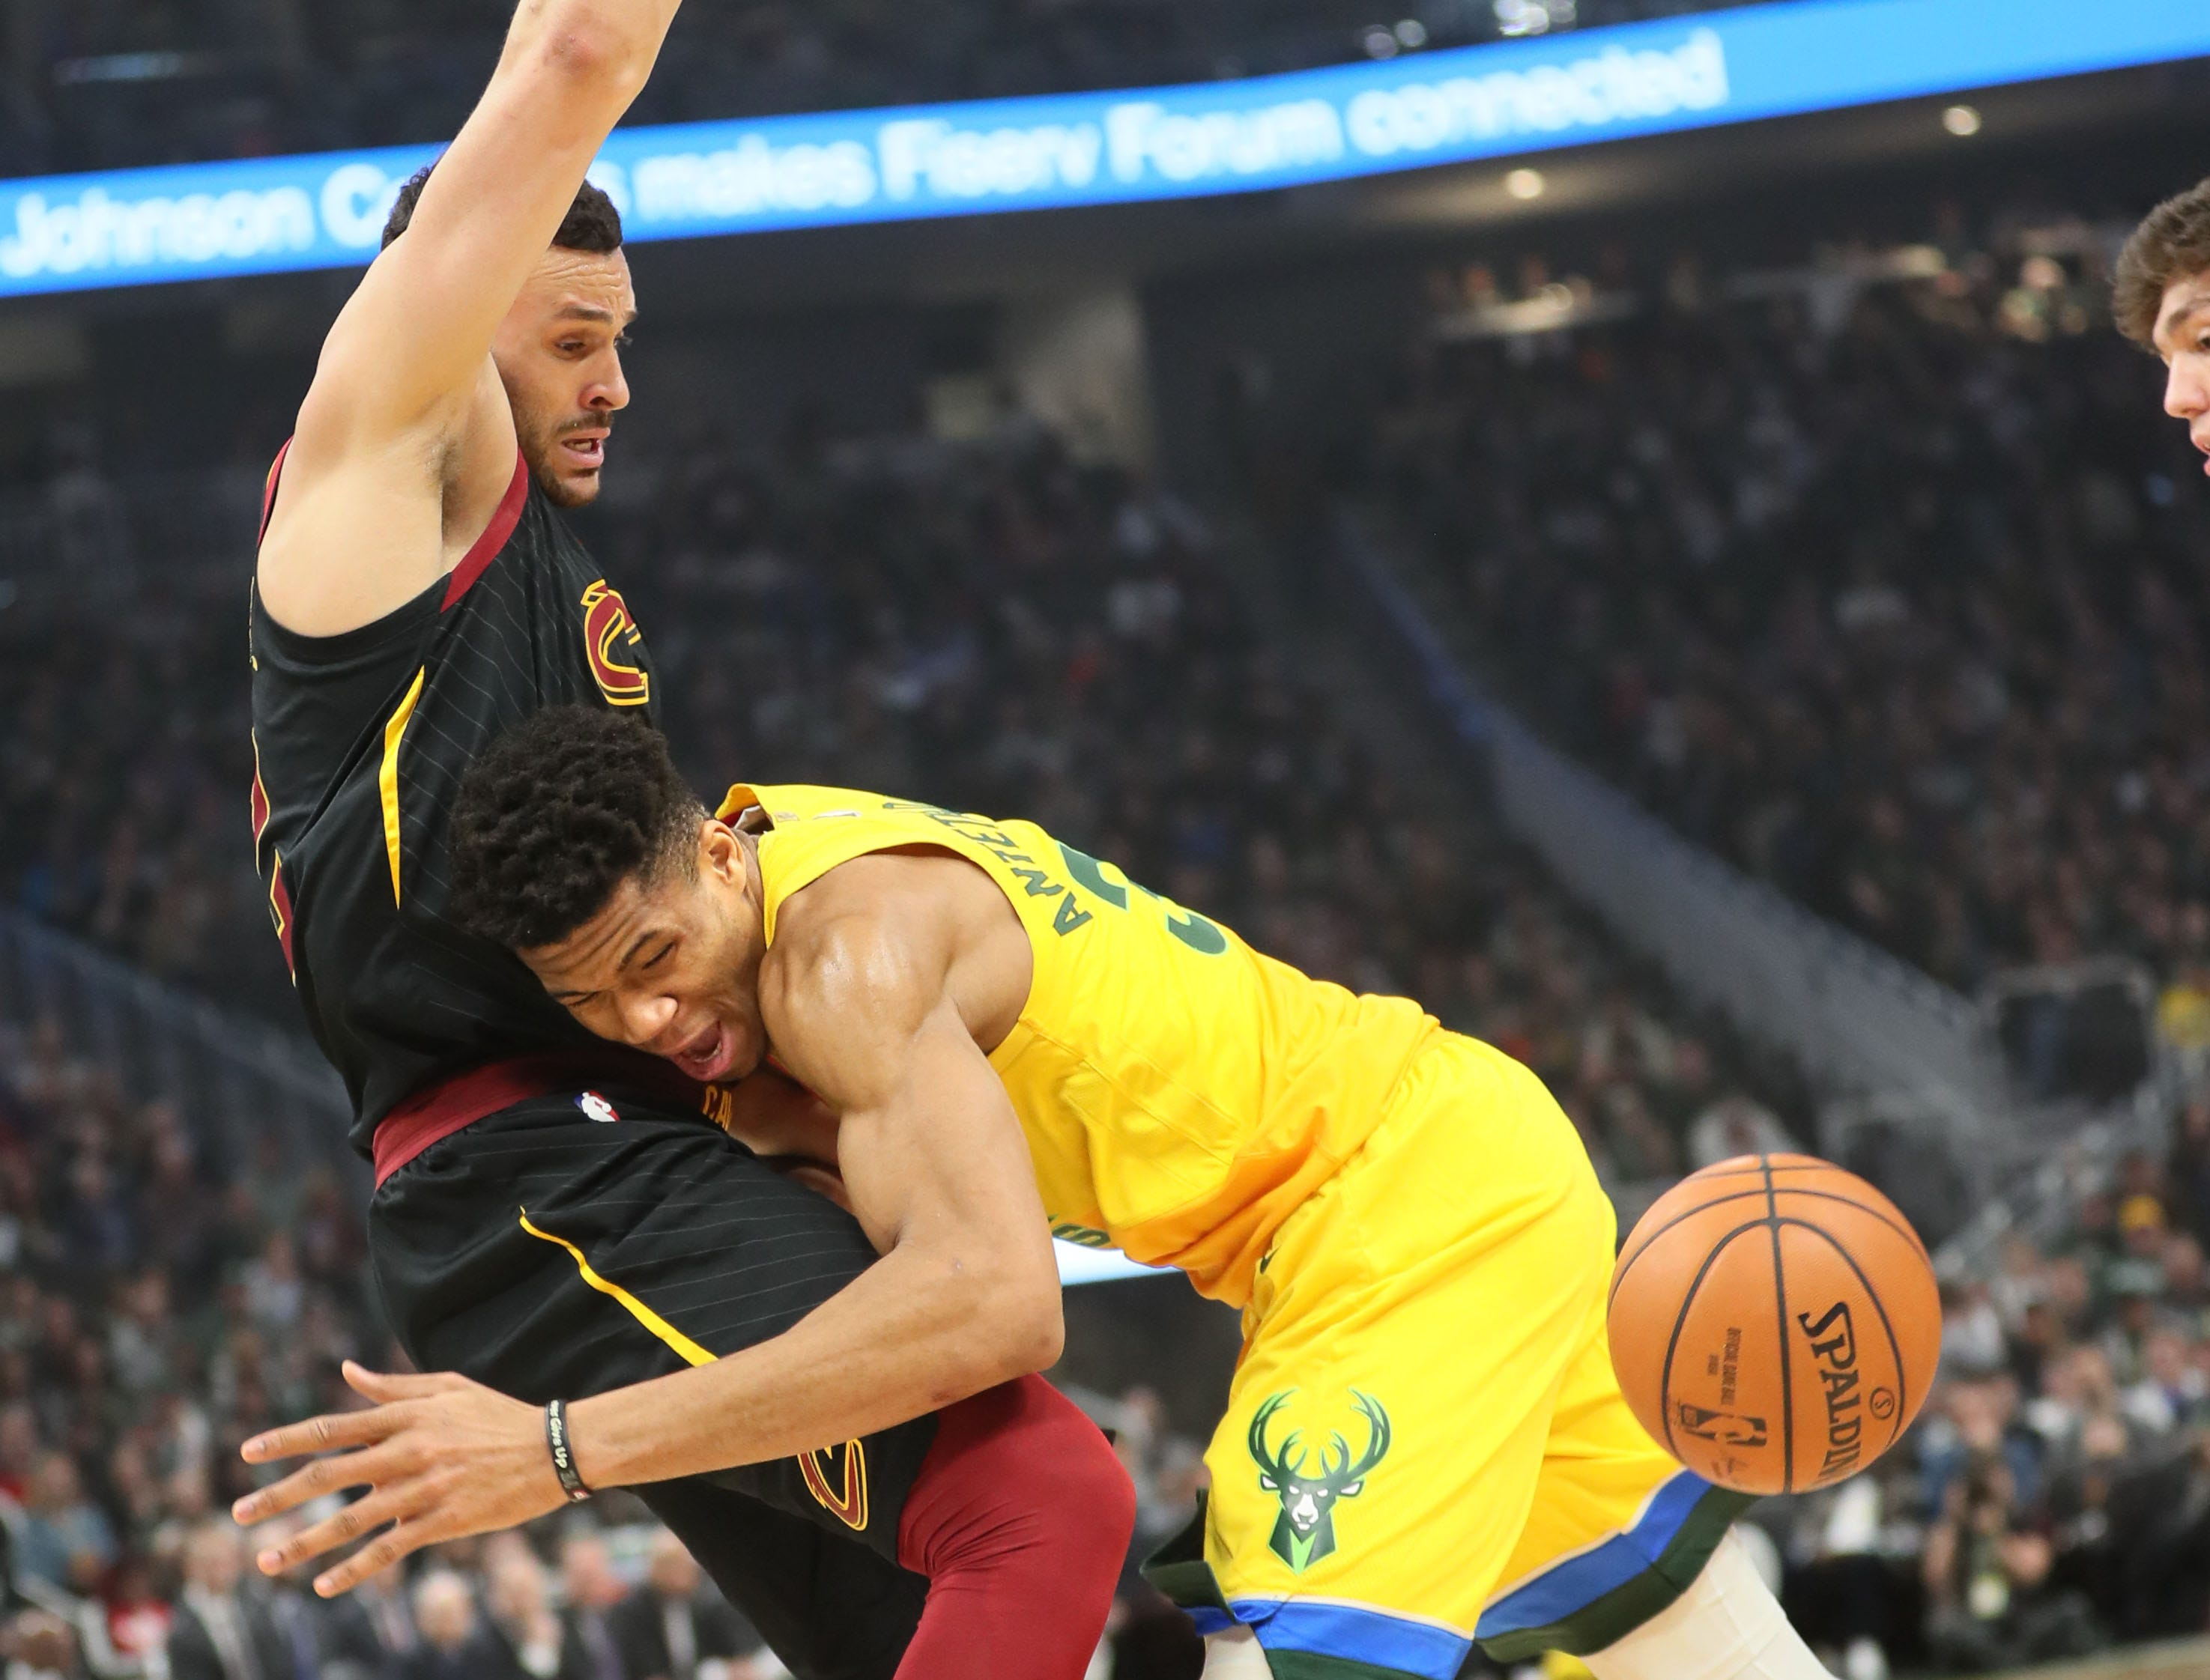 Giannis Antetokounmpo of the Bucks loses control of the ball after running into the Cavaliers' Larry Nance Jr. on Sunday.